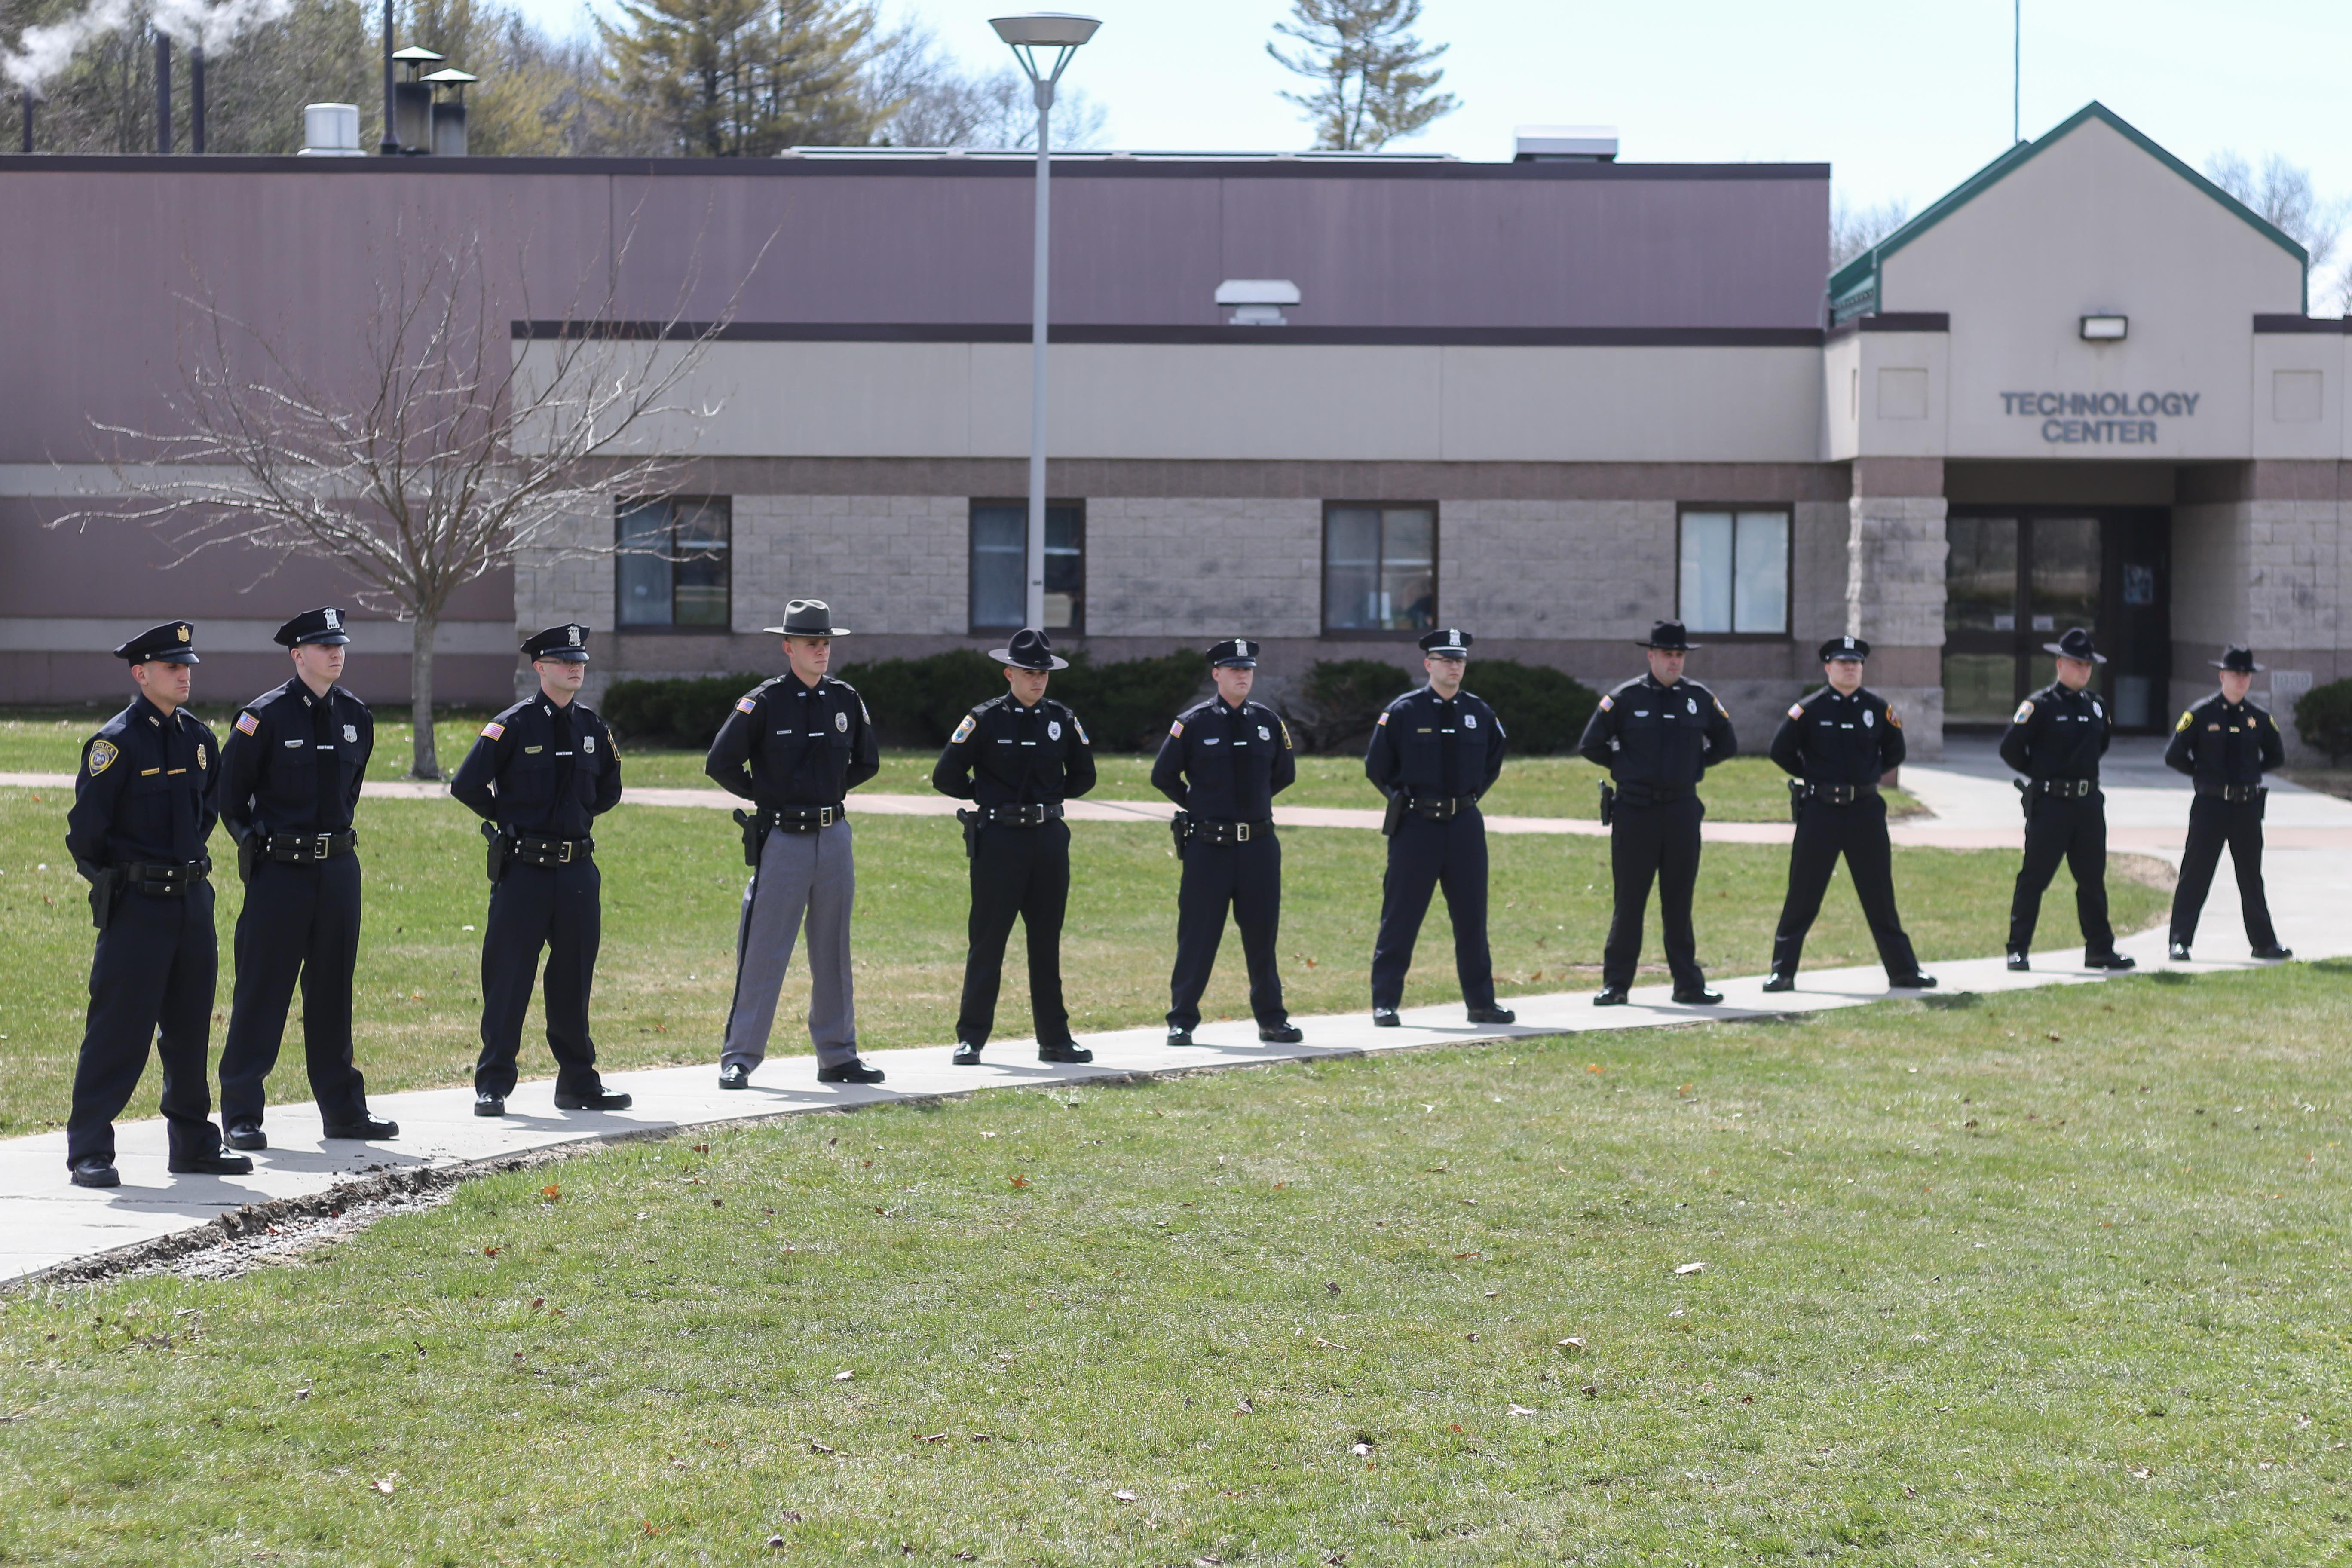 Zone 14's graduating class of 2018 included eleven officers representing eight different departments within six New York State counties.